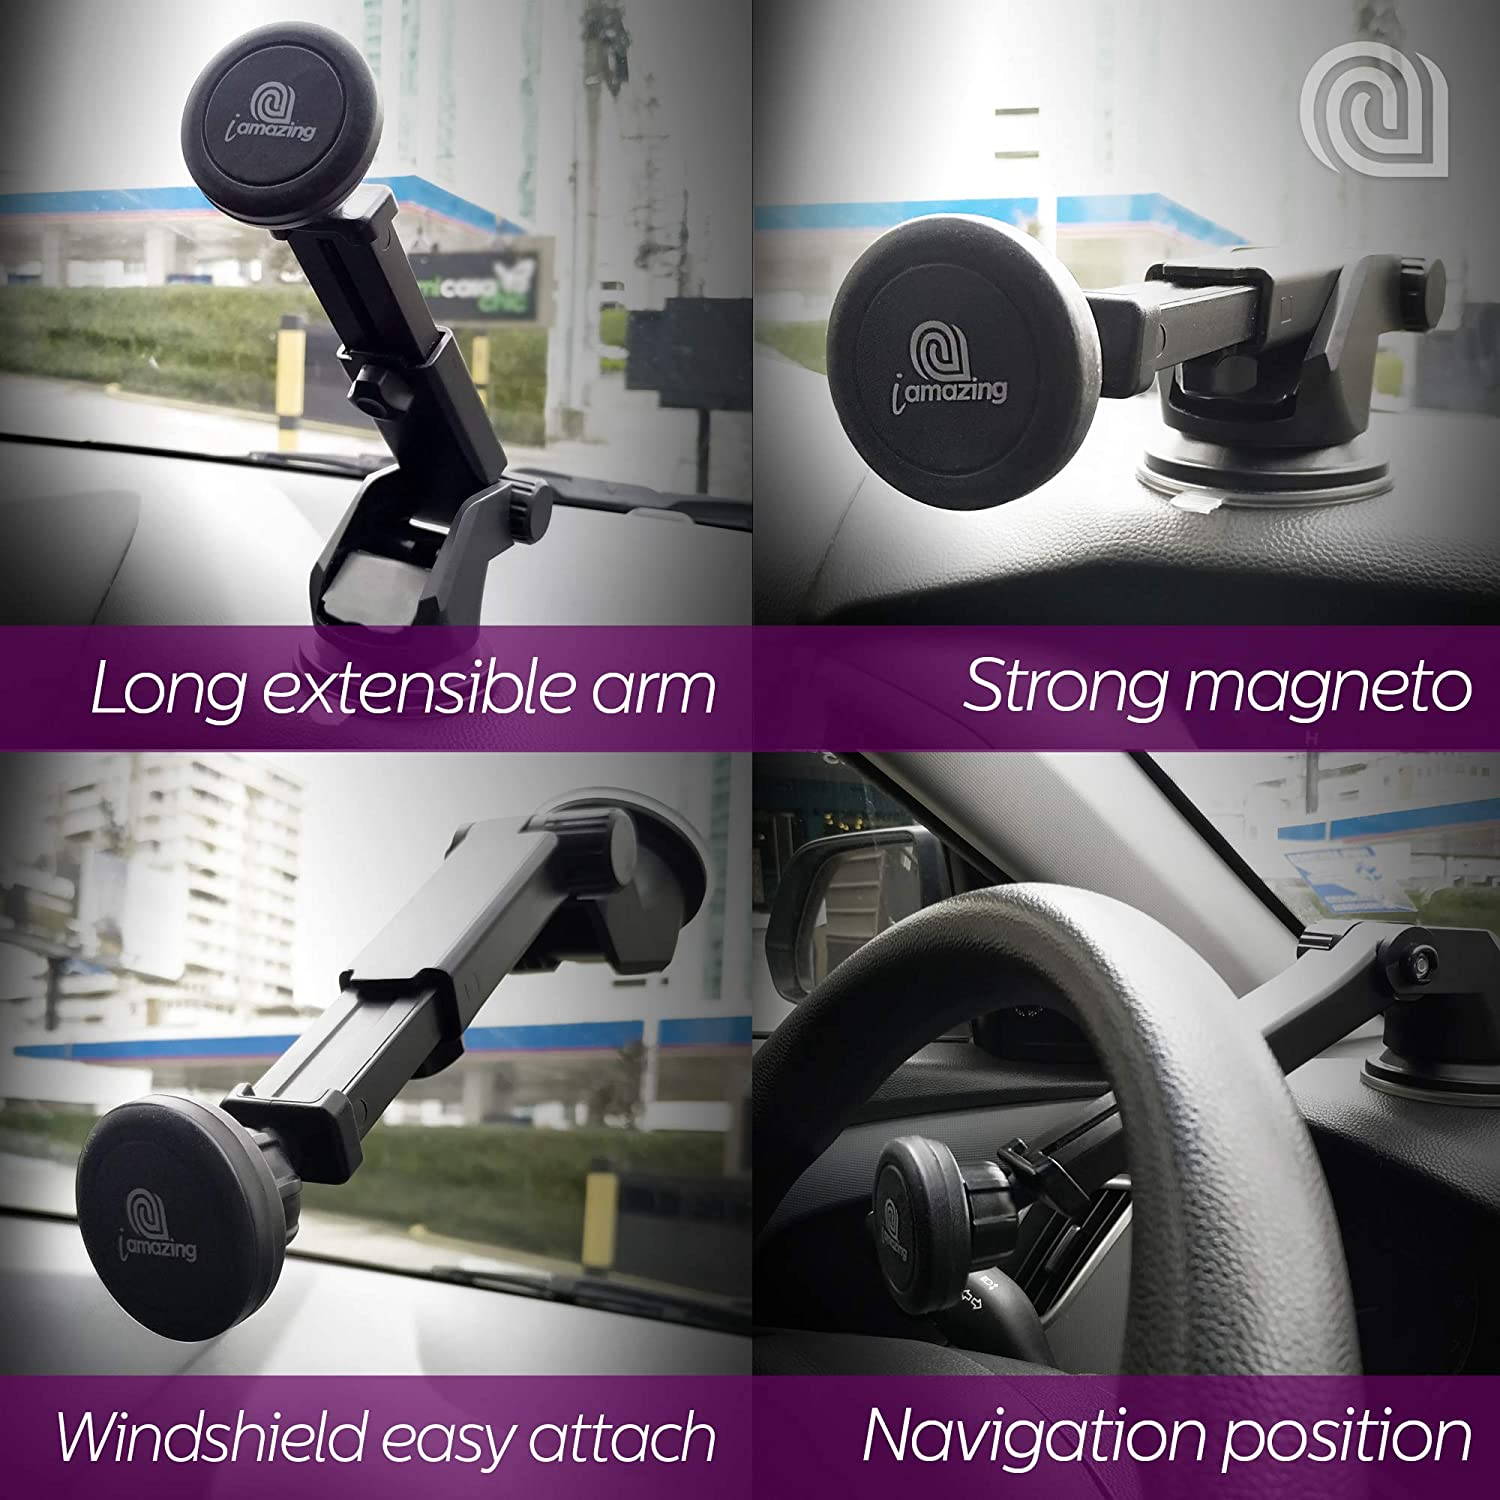 iAMAZING Magnetic Phone Car Mount Car Dashboard Phone Holder Black Compatible with iPhone Xs X 8 8Plus 7 7s 6s Plus 6s 5s 5c Samsung Galaxy S10 S9 S8 Edge S7 S6 Note 9 Xiaomi